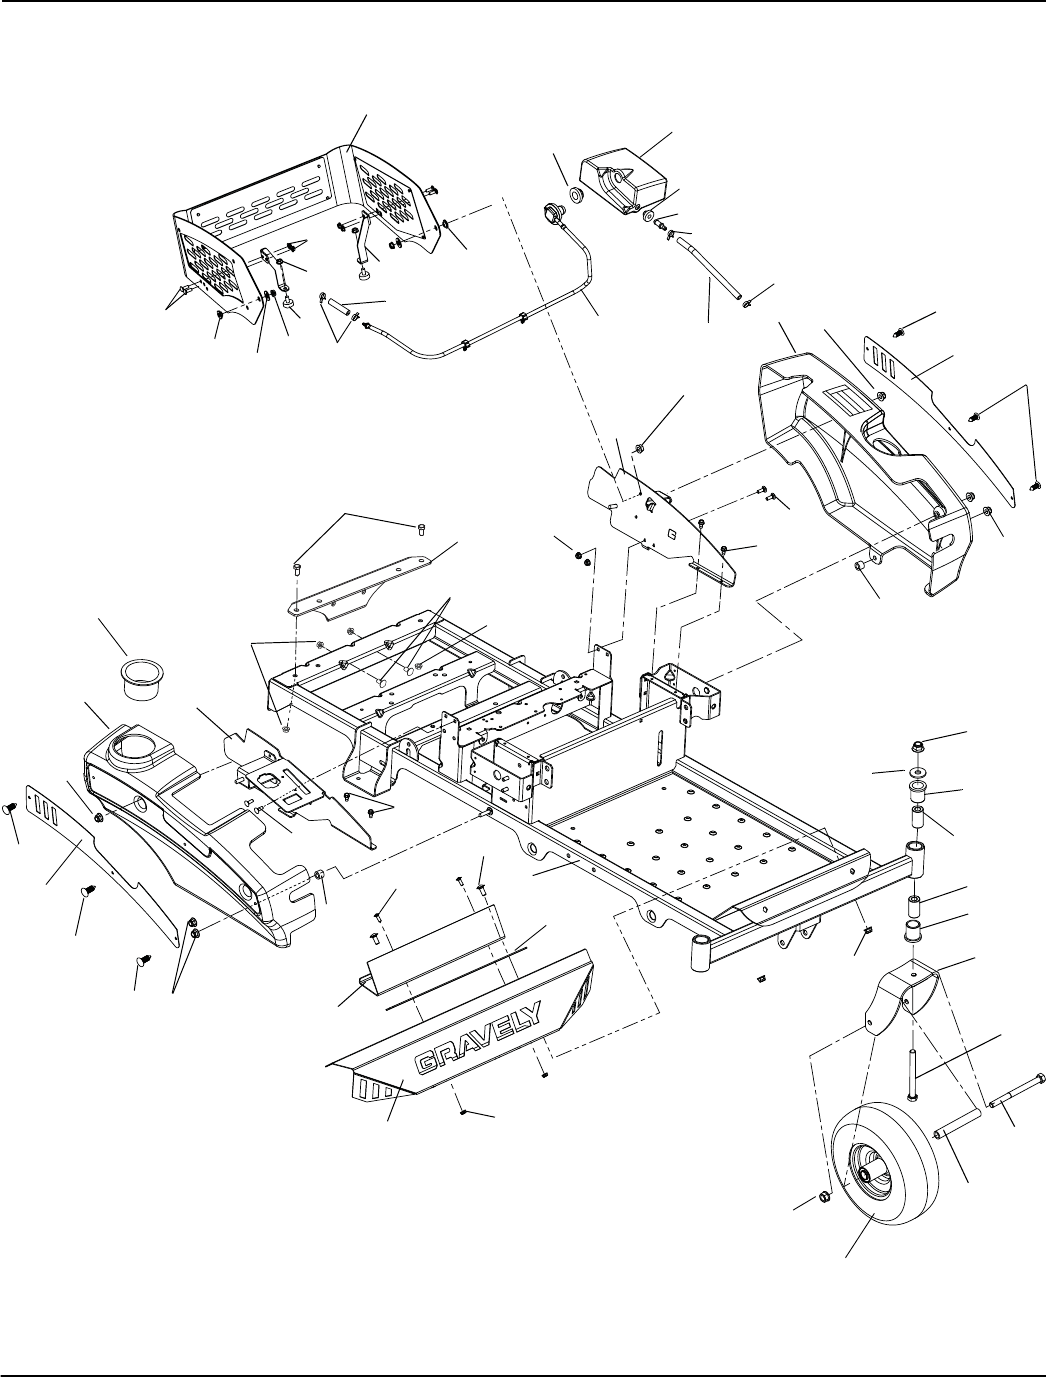 Page 8 of Gravely Lawn Mower 4699300 7/15 User Guide